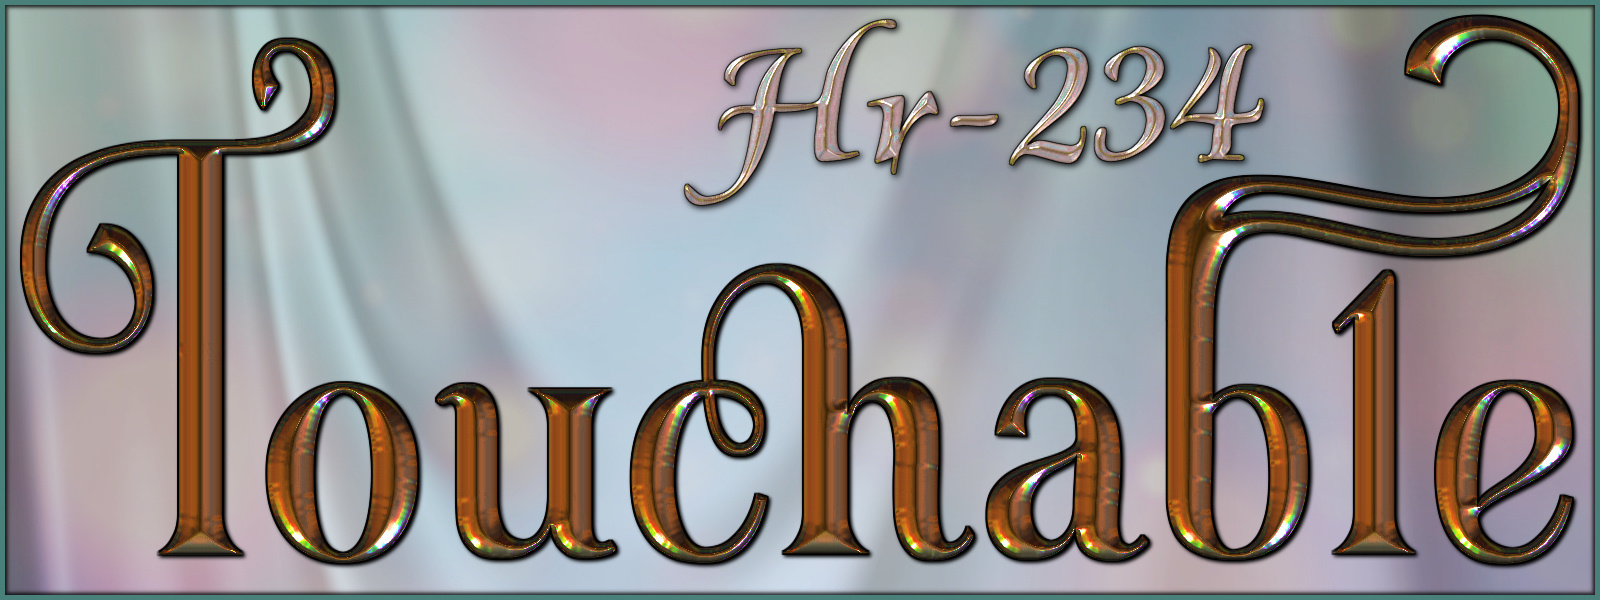 Touchable Hr-234 by -Wolfie-